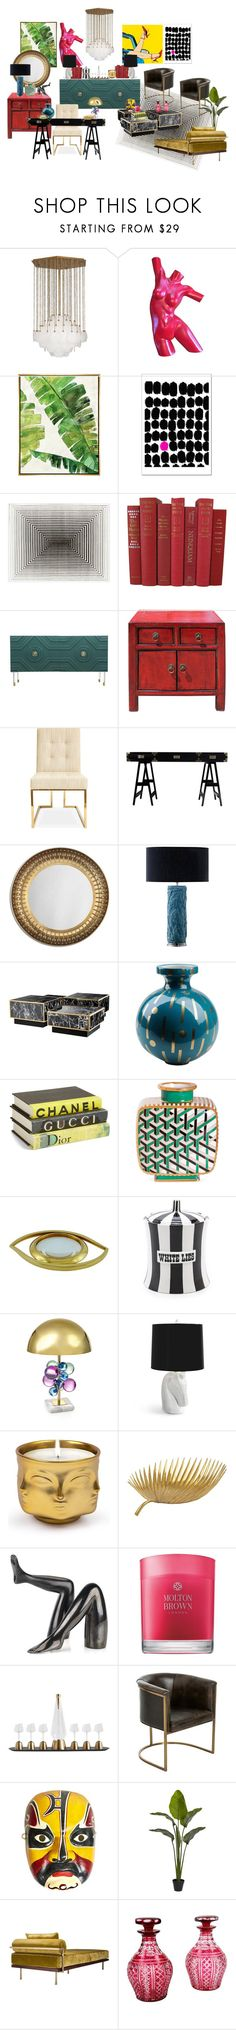 """""""Destino Study"""" by courtney-lauren-porter ❤ liked on Polyvore featuring interior, interiors, interior design, home, home decor, interior decorating, Jonathan Adler, Barclay Butera, ModShop and Selamat"""